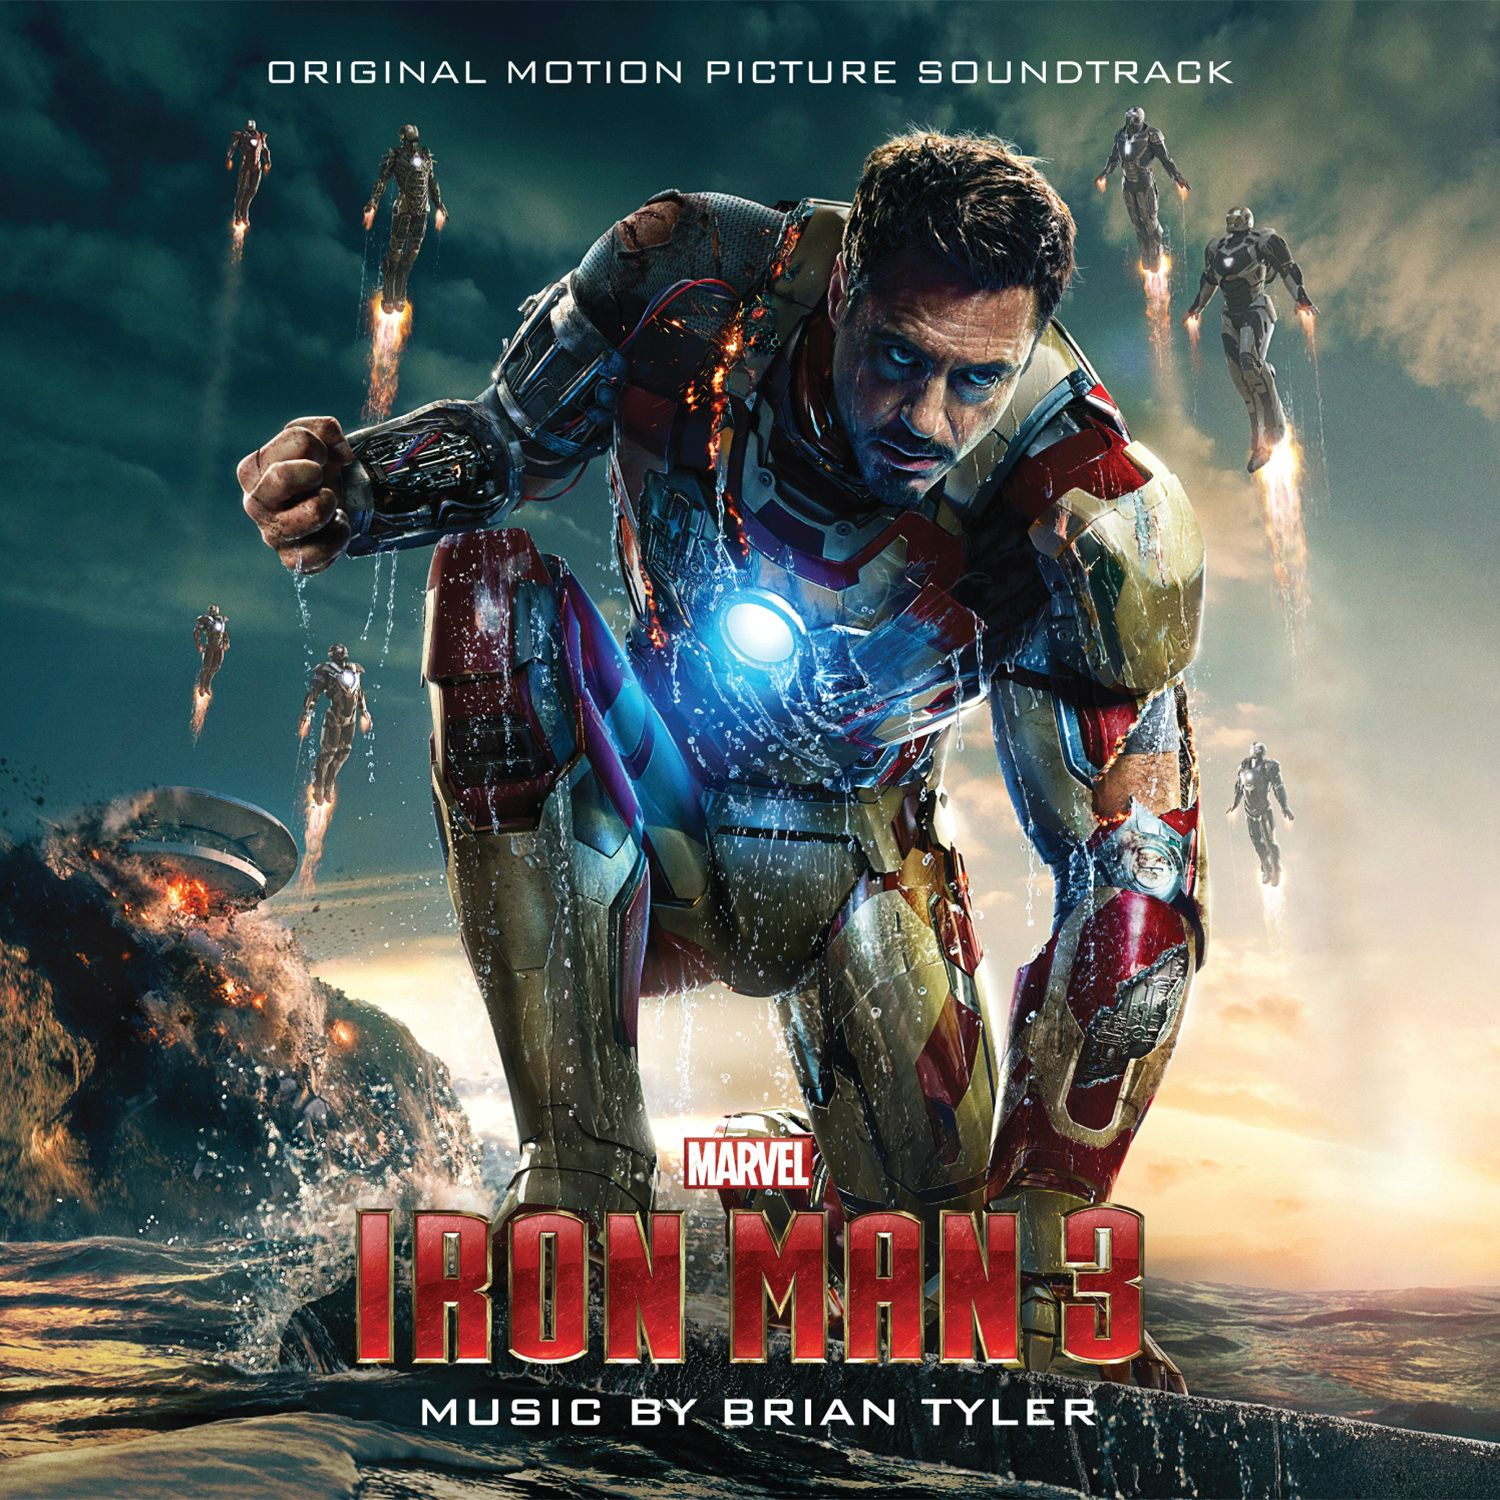 Iron man ac dc download, 6 apr ac/dc have revealed plans for a.